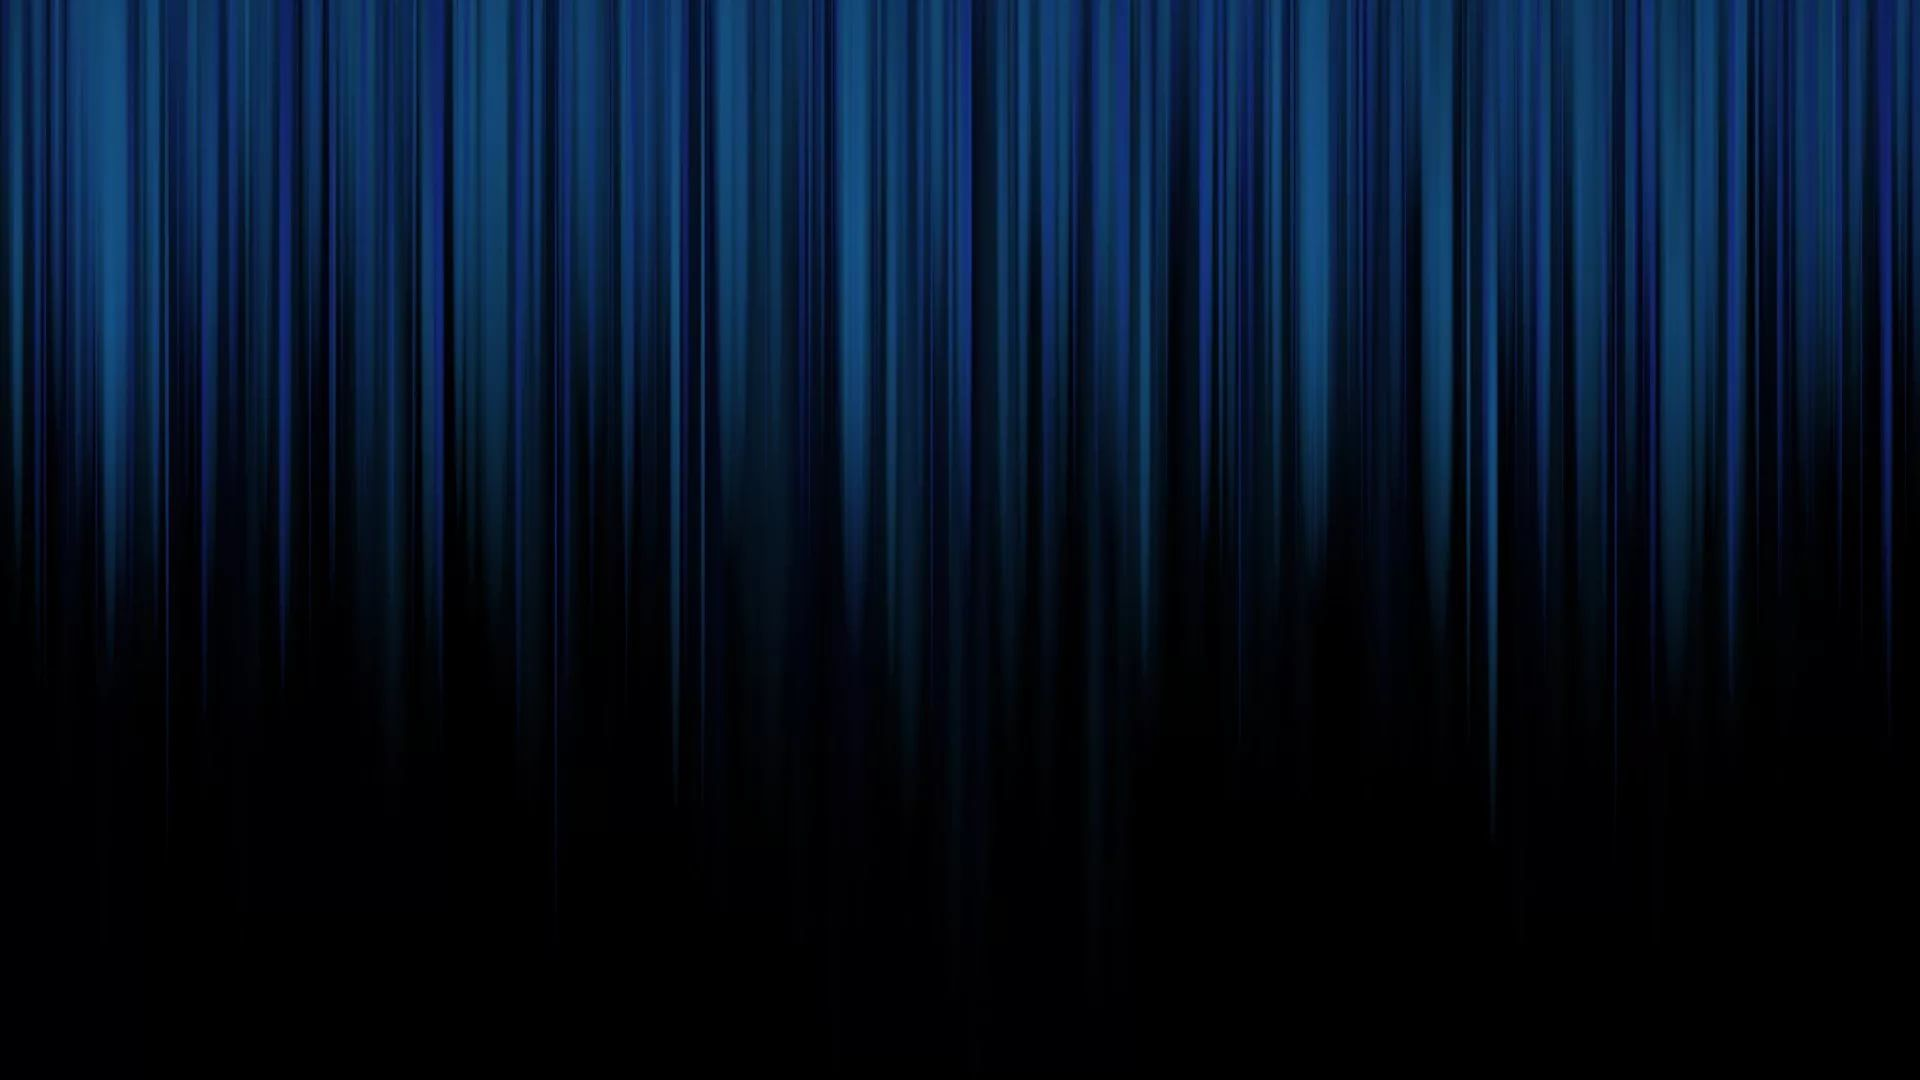 Black And Blue download free wallpaper image search